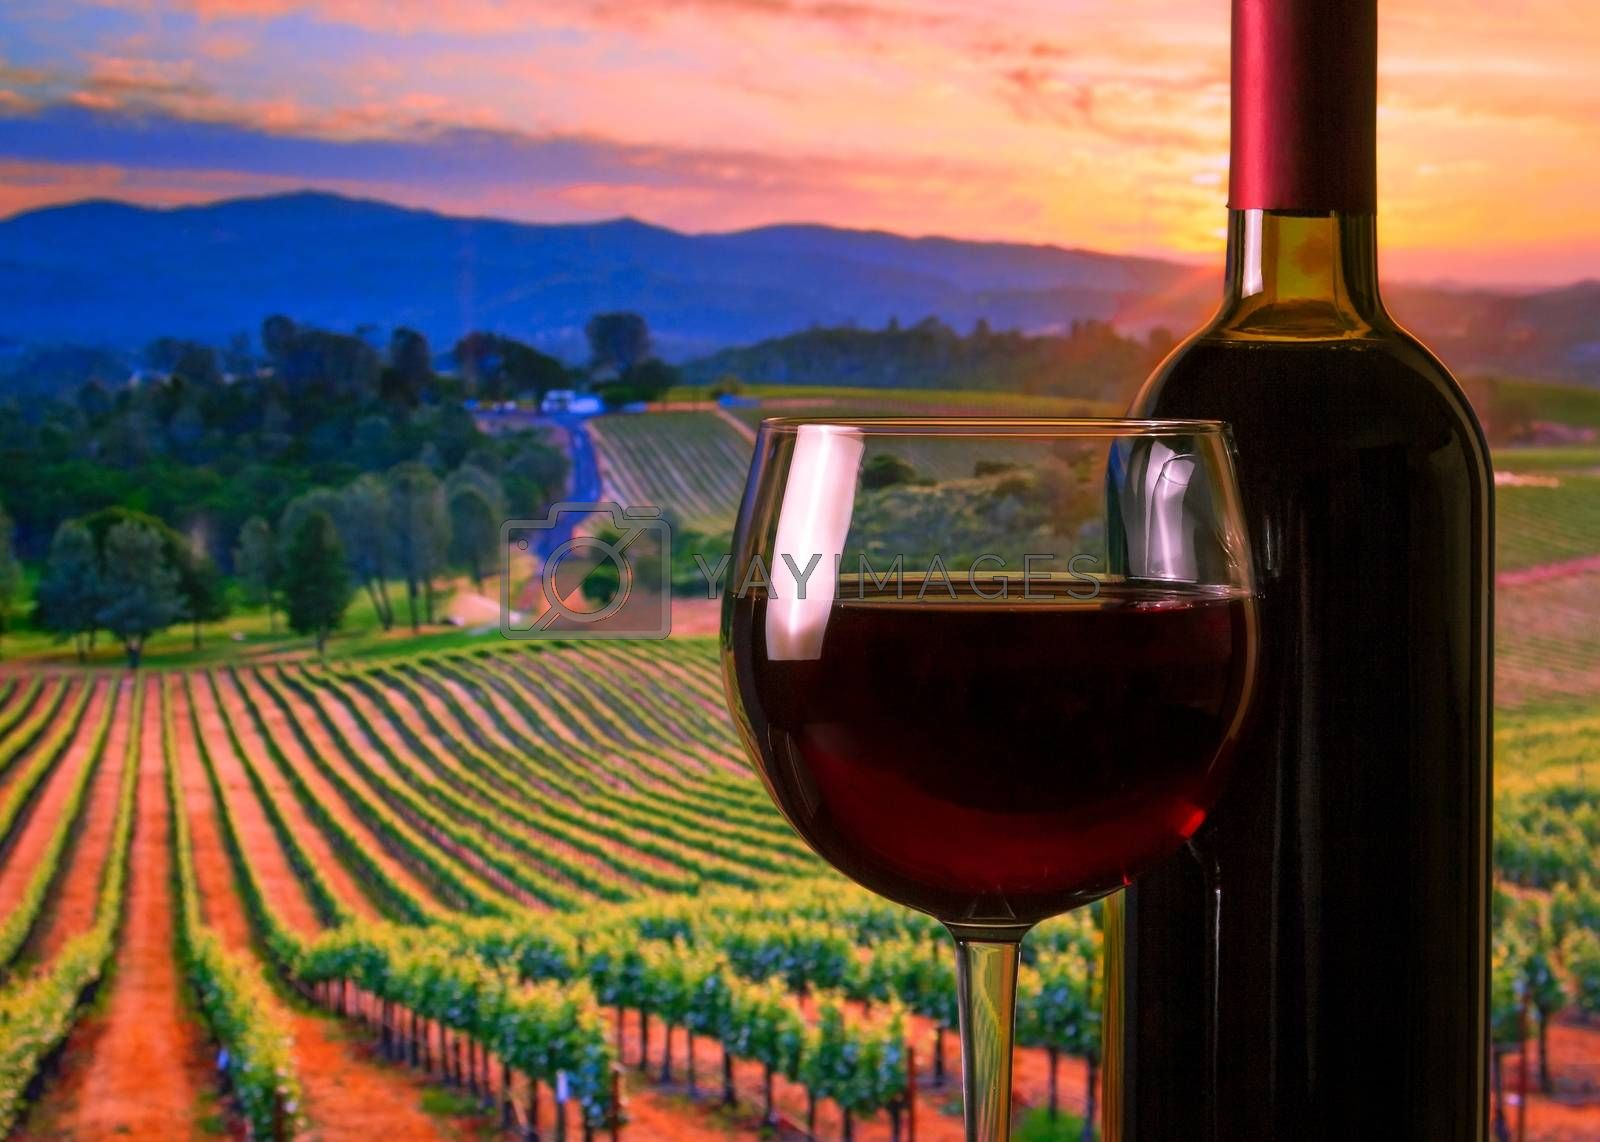 glass with red wine and bottle, atmosphere sunset by donfiore